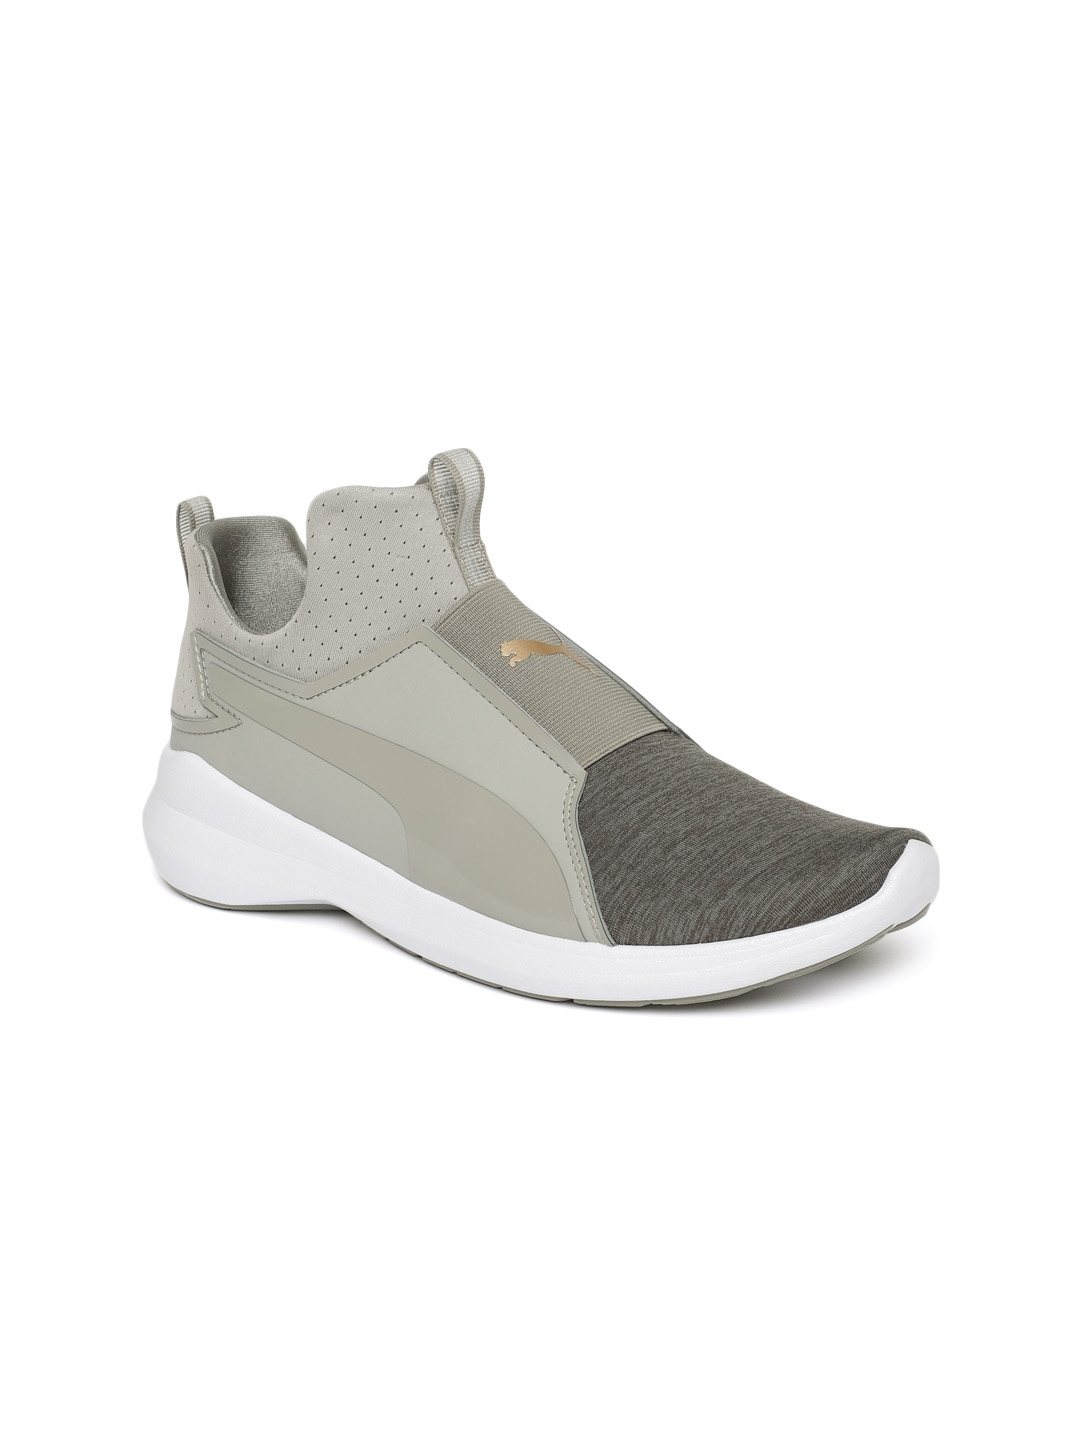 fee87f405d74 Buy Puma Women Grey Rebel Mid EP Q2 Slip On Sneakers - Casual Shoes ...